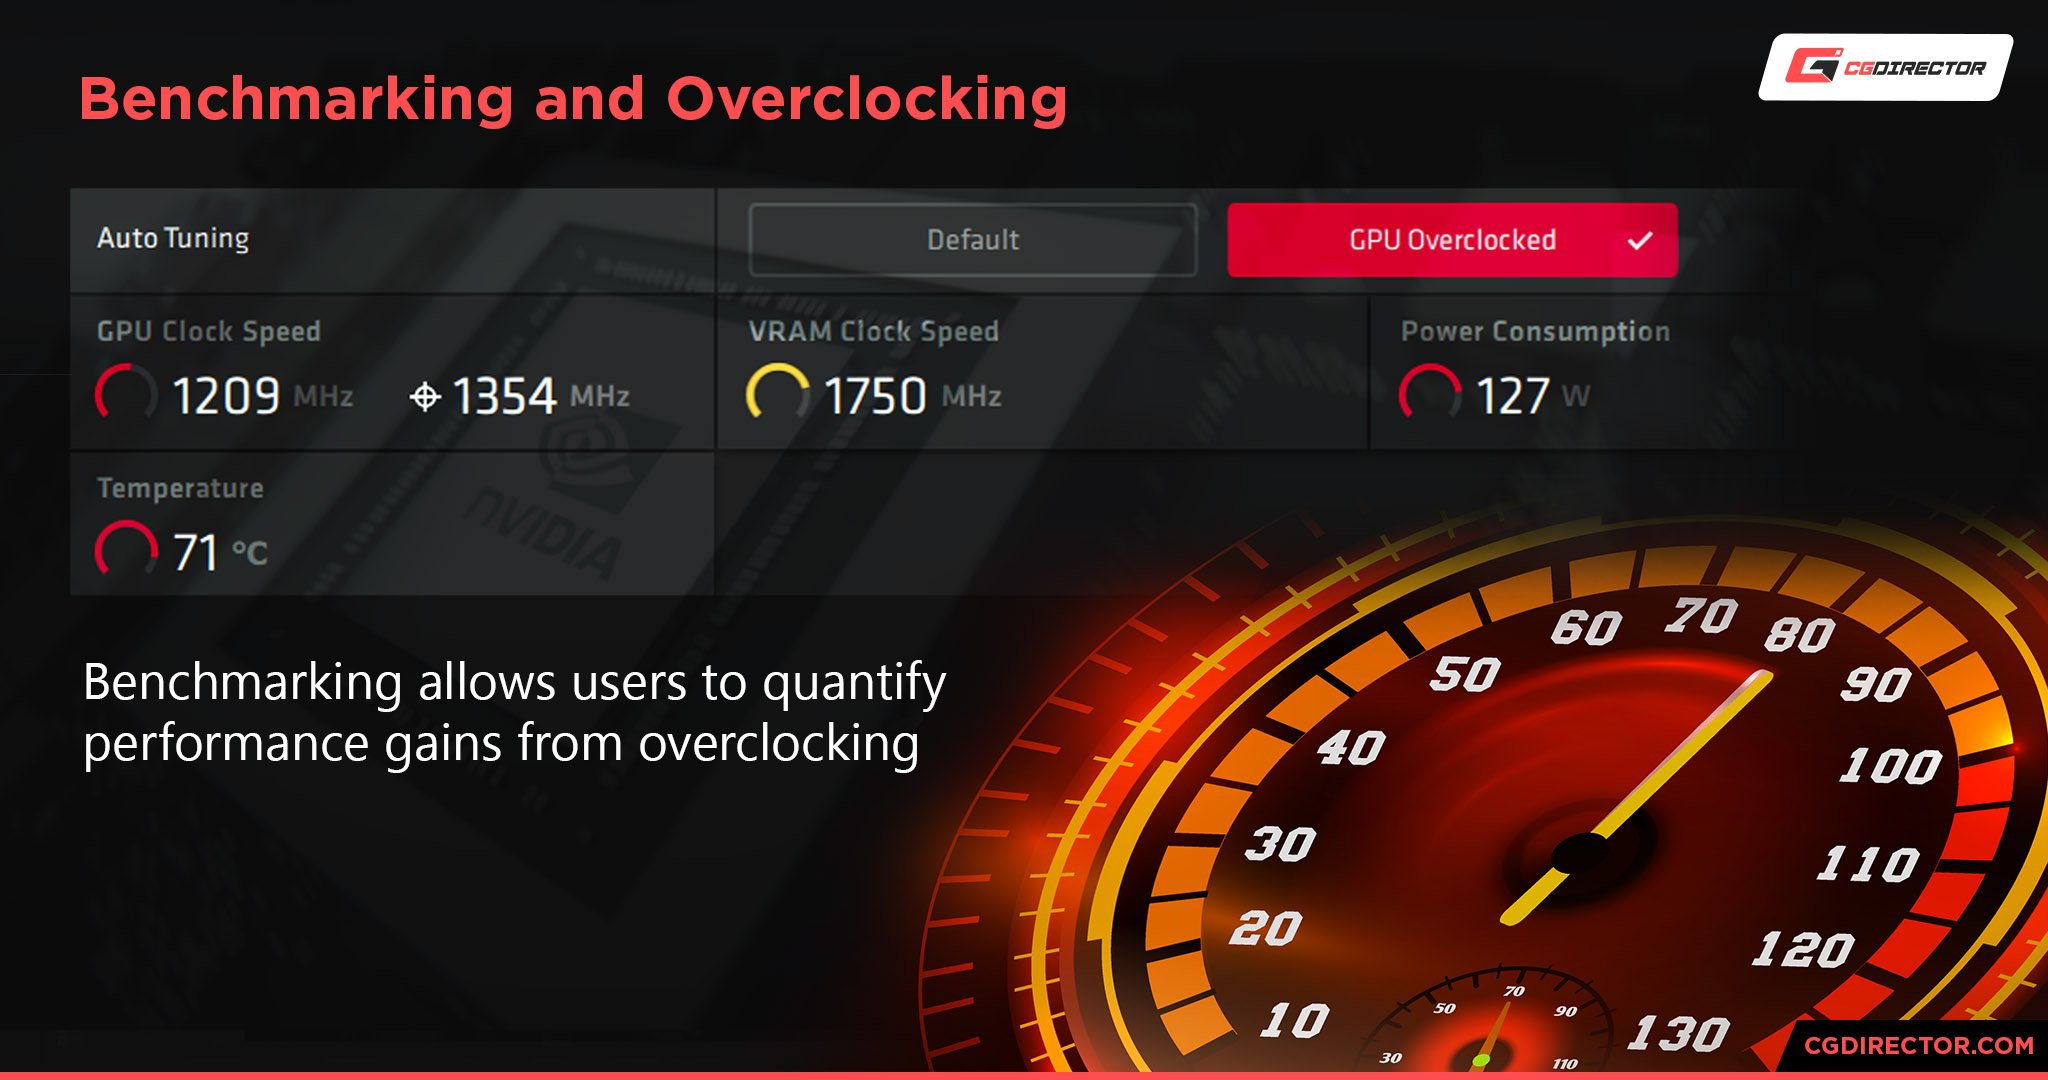 Benchmarking and Overclocking